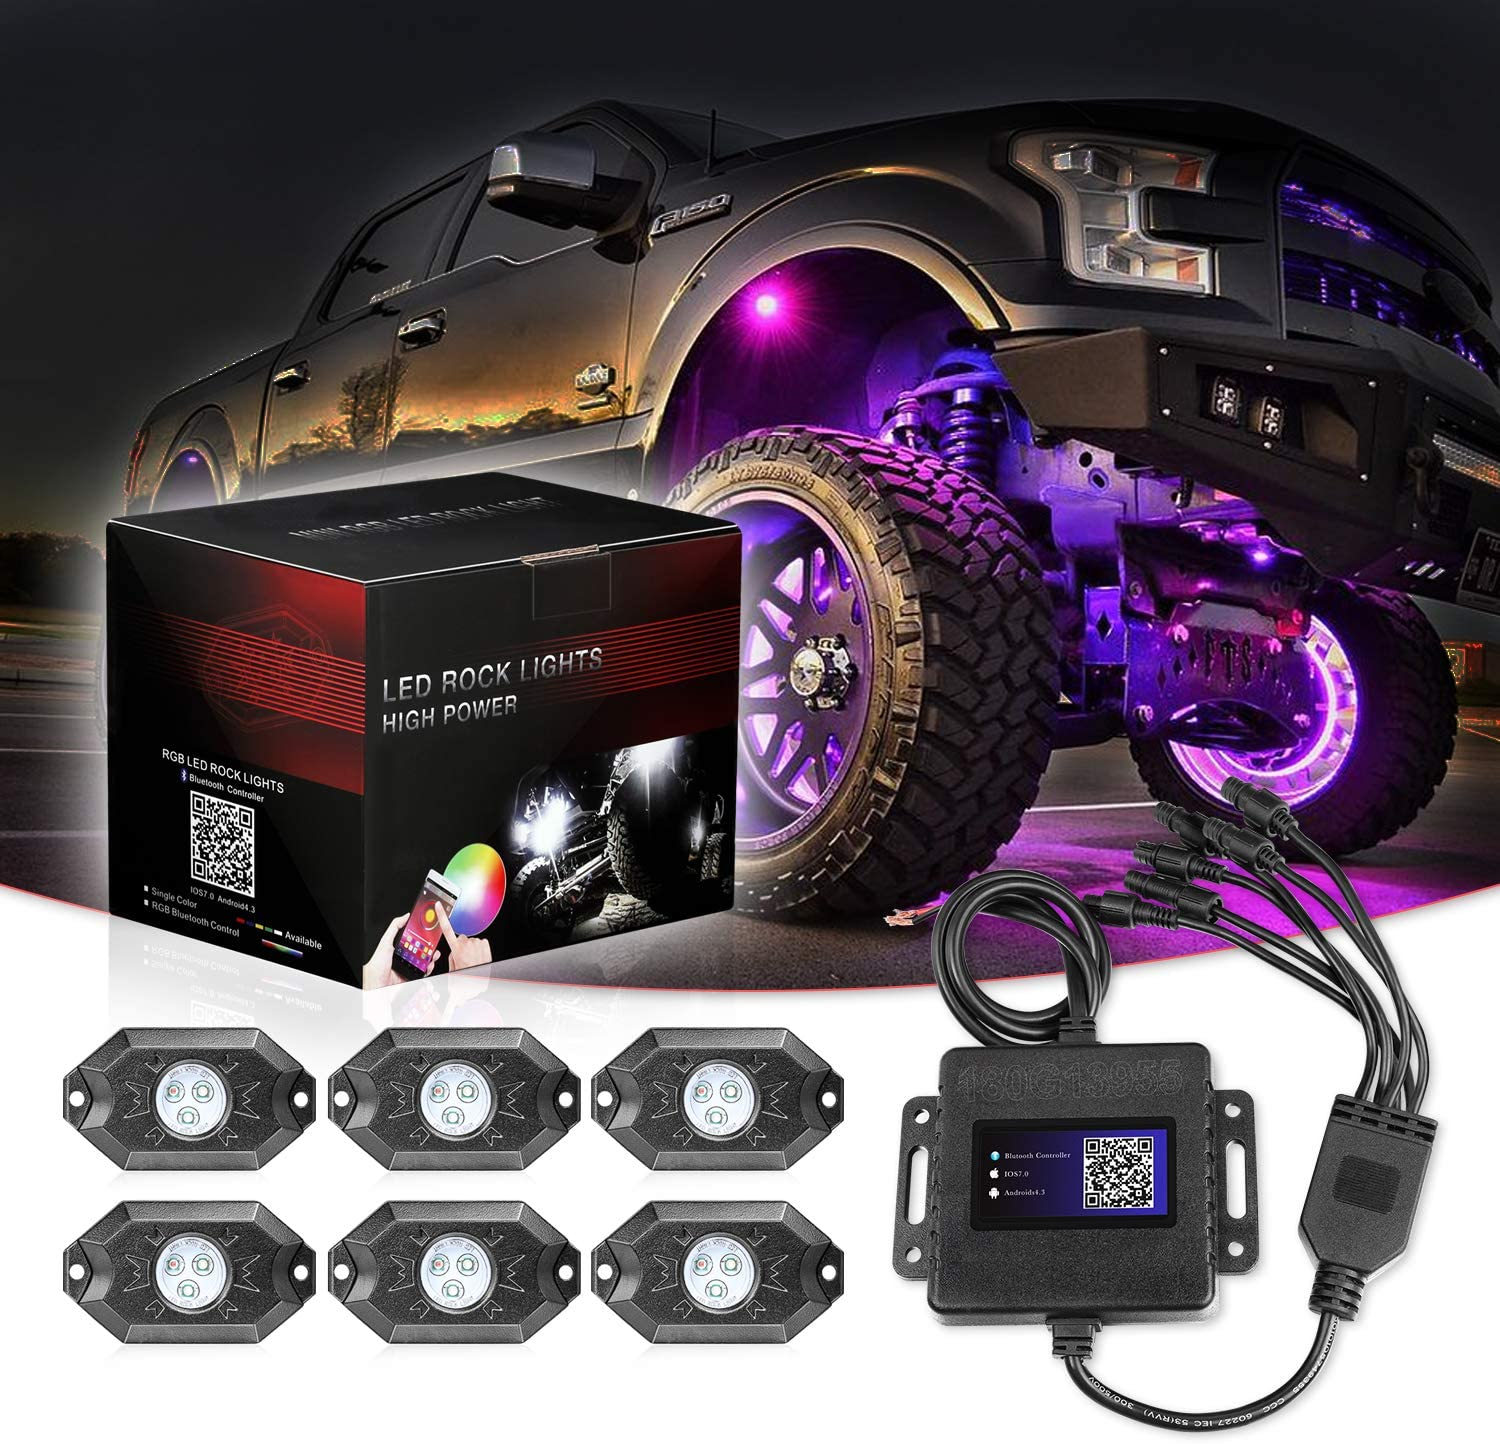 SWATOW 4x4 RGB LED Rock Lights, 6 Pod Lights Multicolor Neon LED Lights w/Bluetooth Control Underglow Trail Rig Lights Wheel Rock Lights for Truck Car ATV UTV